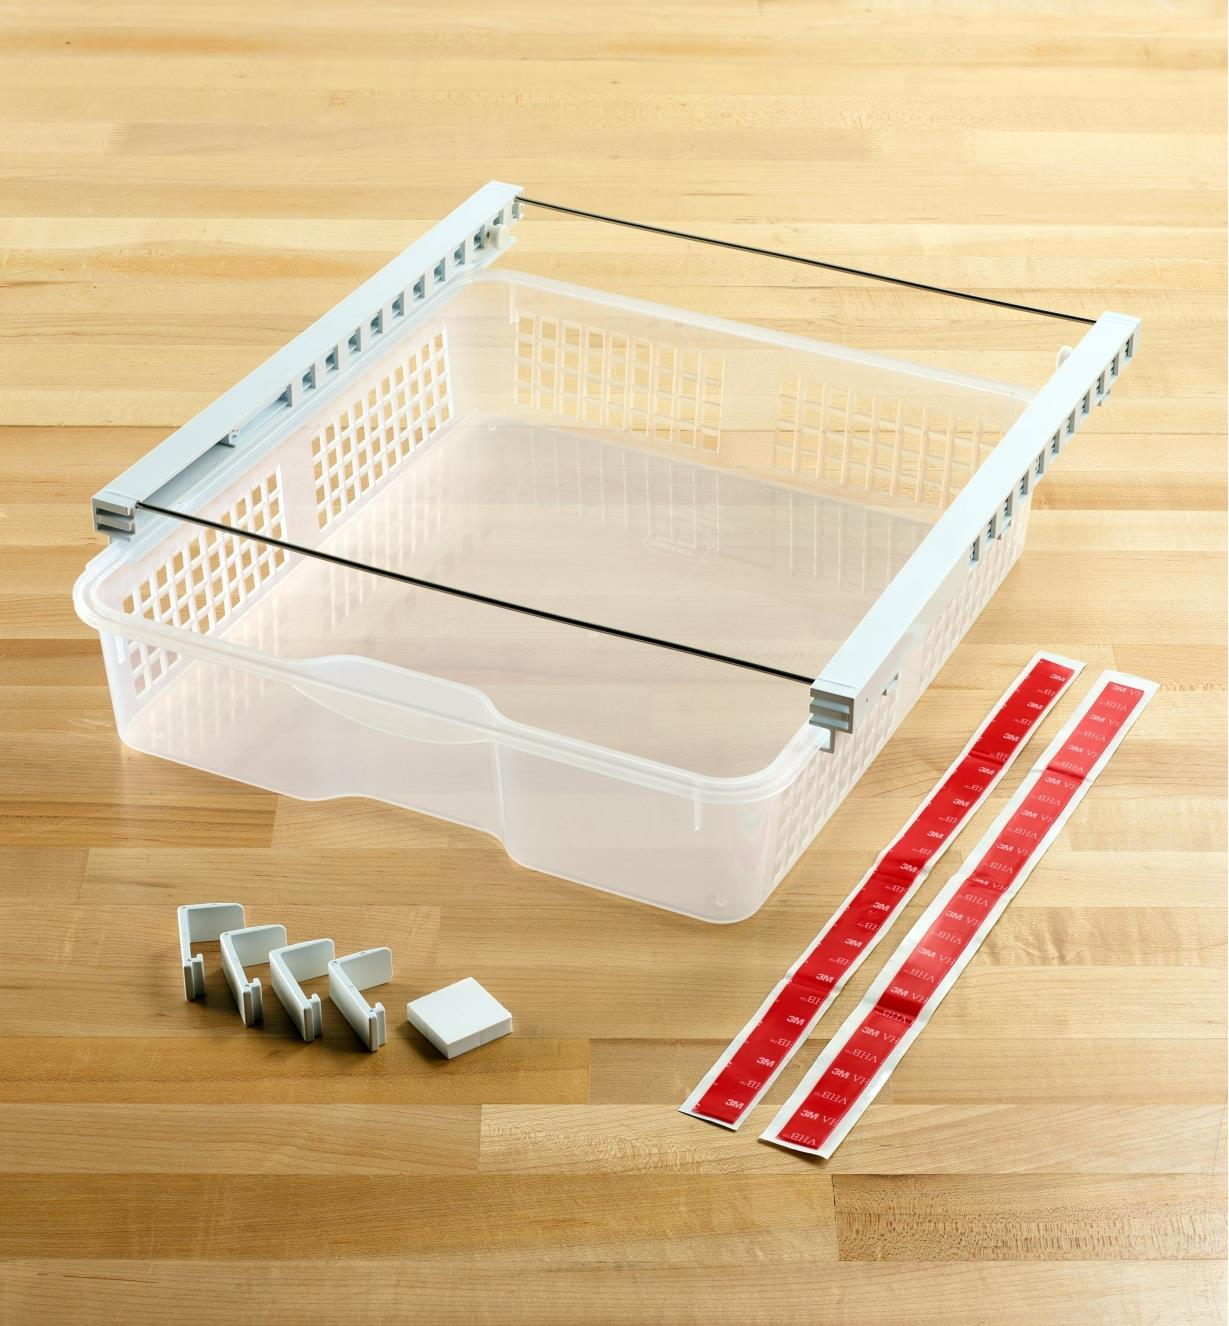 Wide hanging storage drawer ready to install with clips or included tape strips